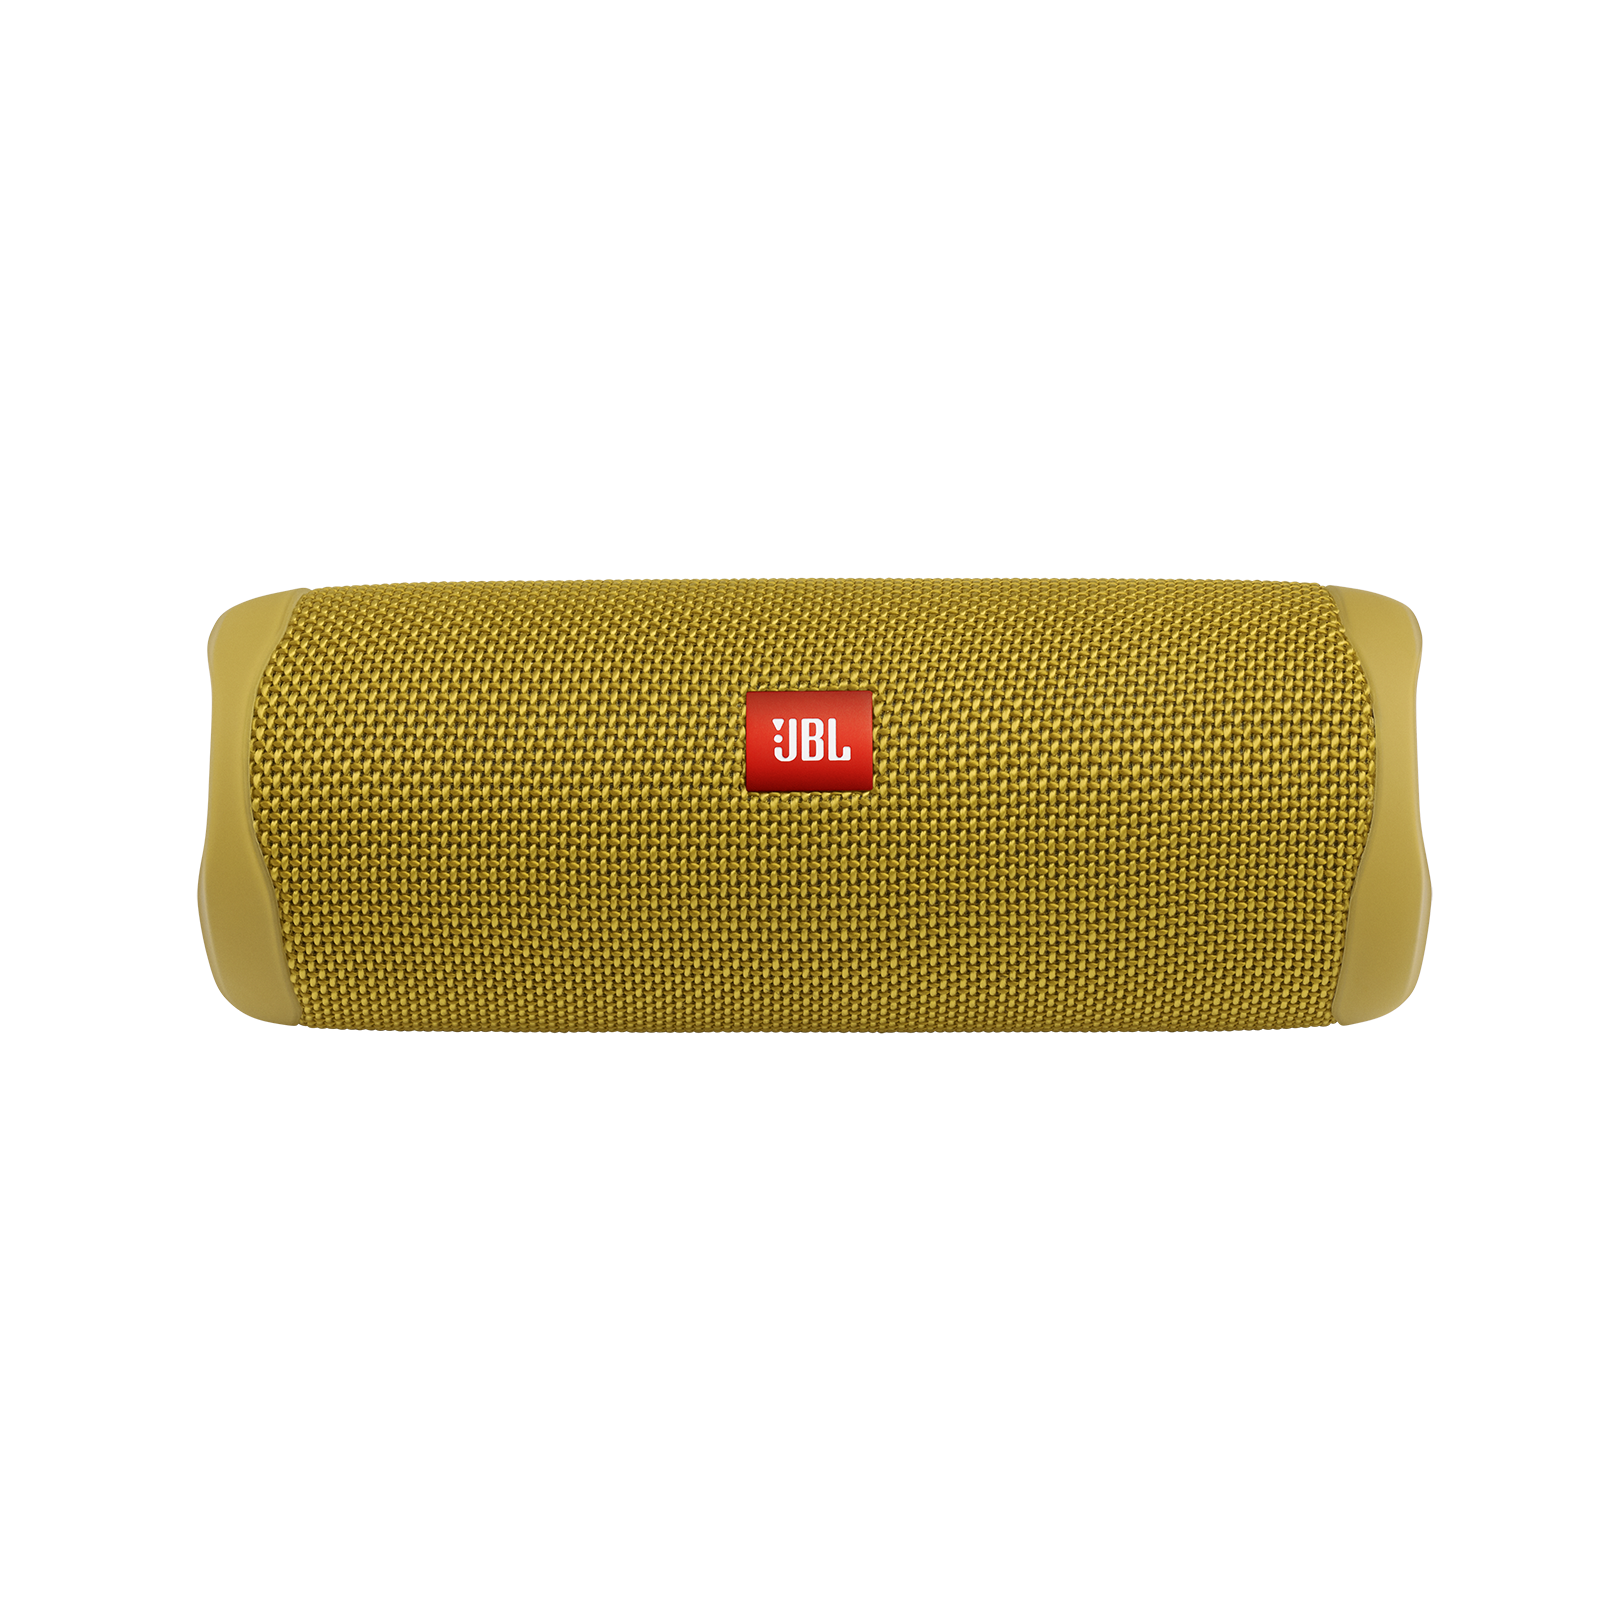 JBL FLIP 5 - Mustard Yellow - Portable Waterproof Speaker - Front